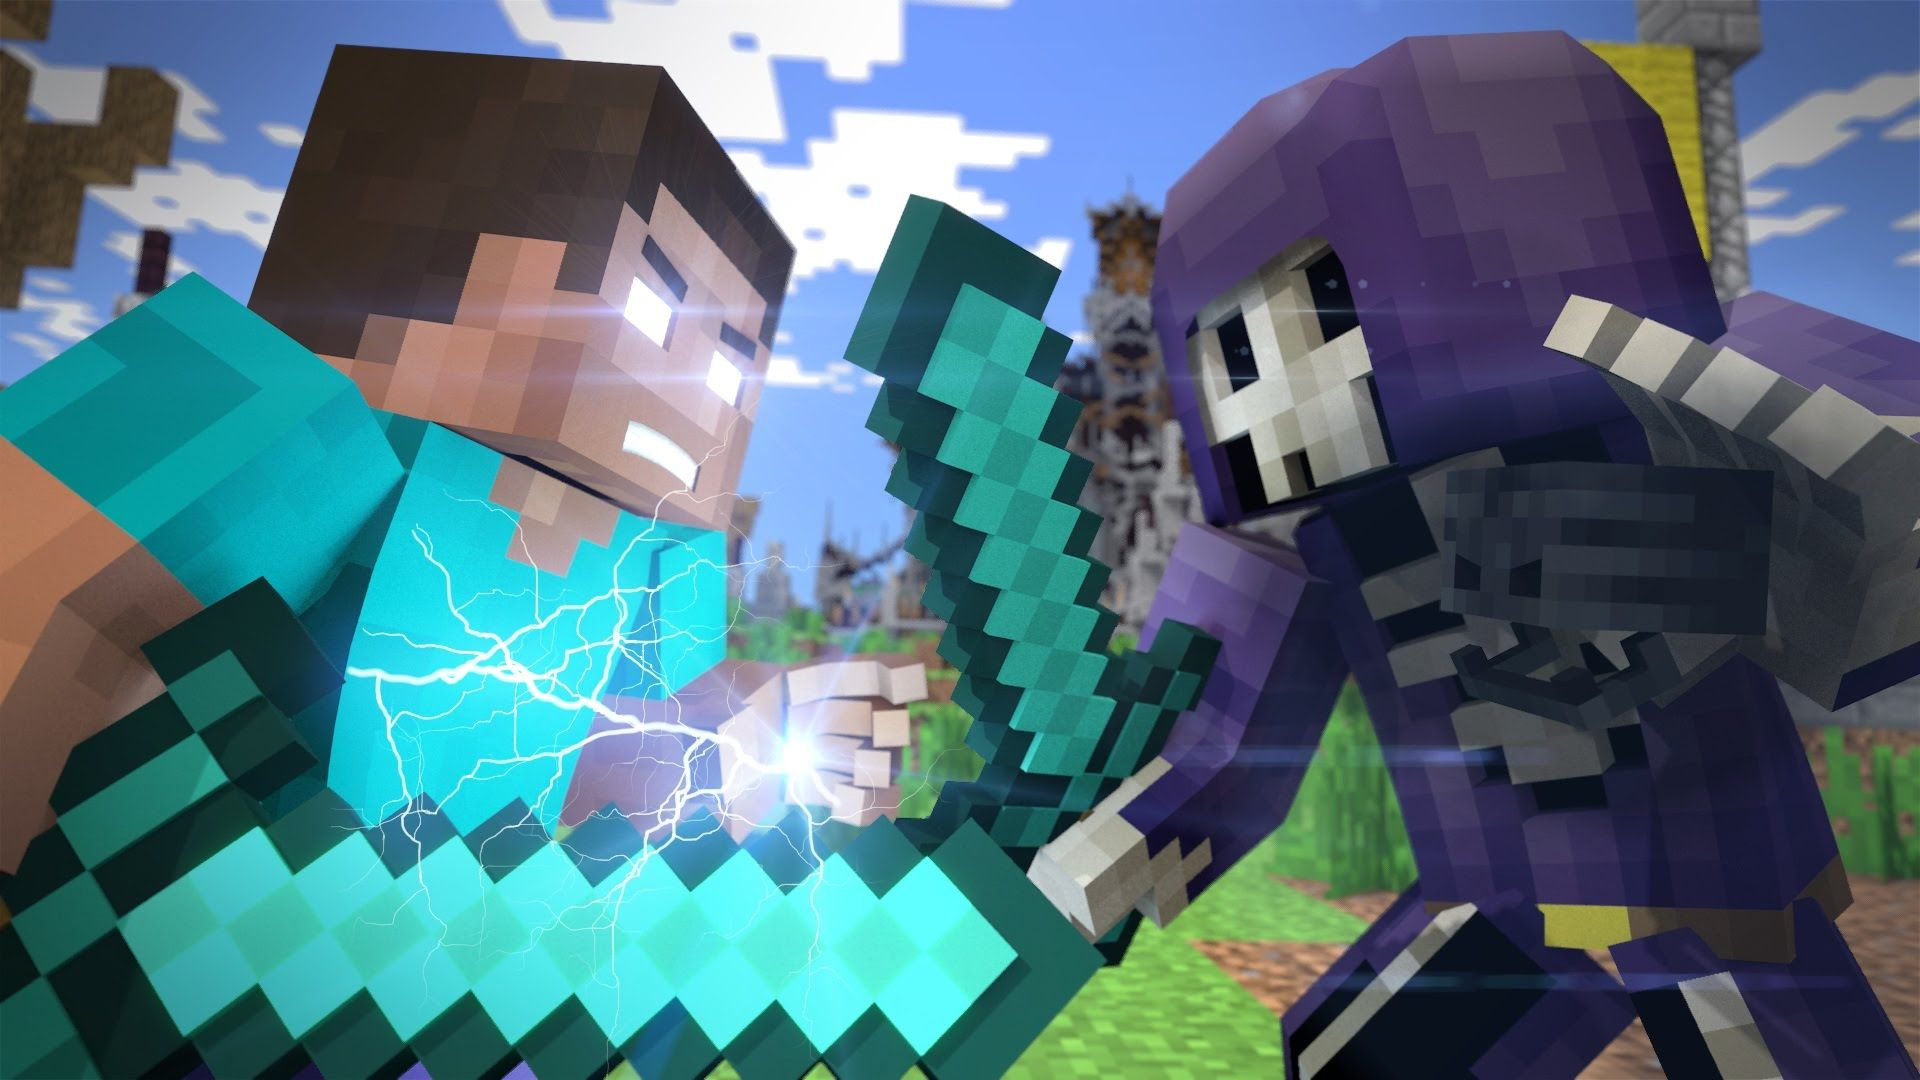 Must see Wallpaper Minecraft King - bd4dafe83eda17368442f81fecd7a065  Graphic_782213.jpg